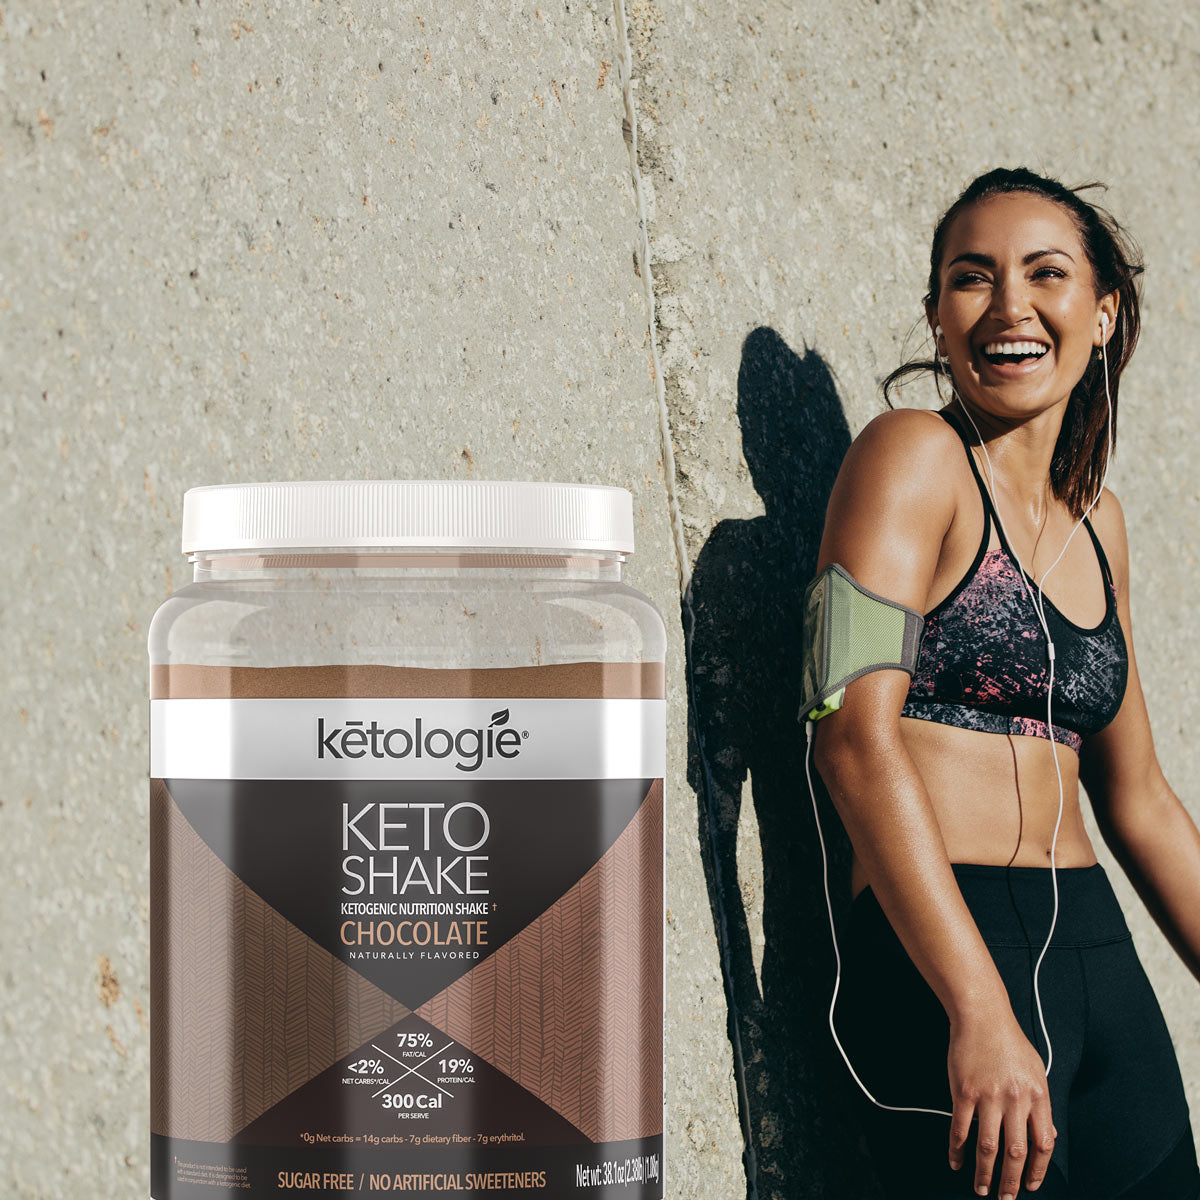 fitness woman next to a ketologie keto shake bottle